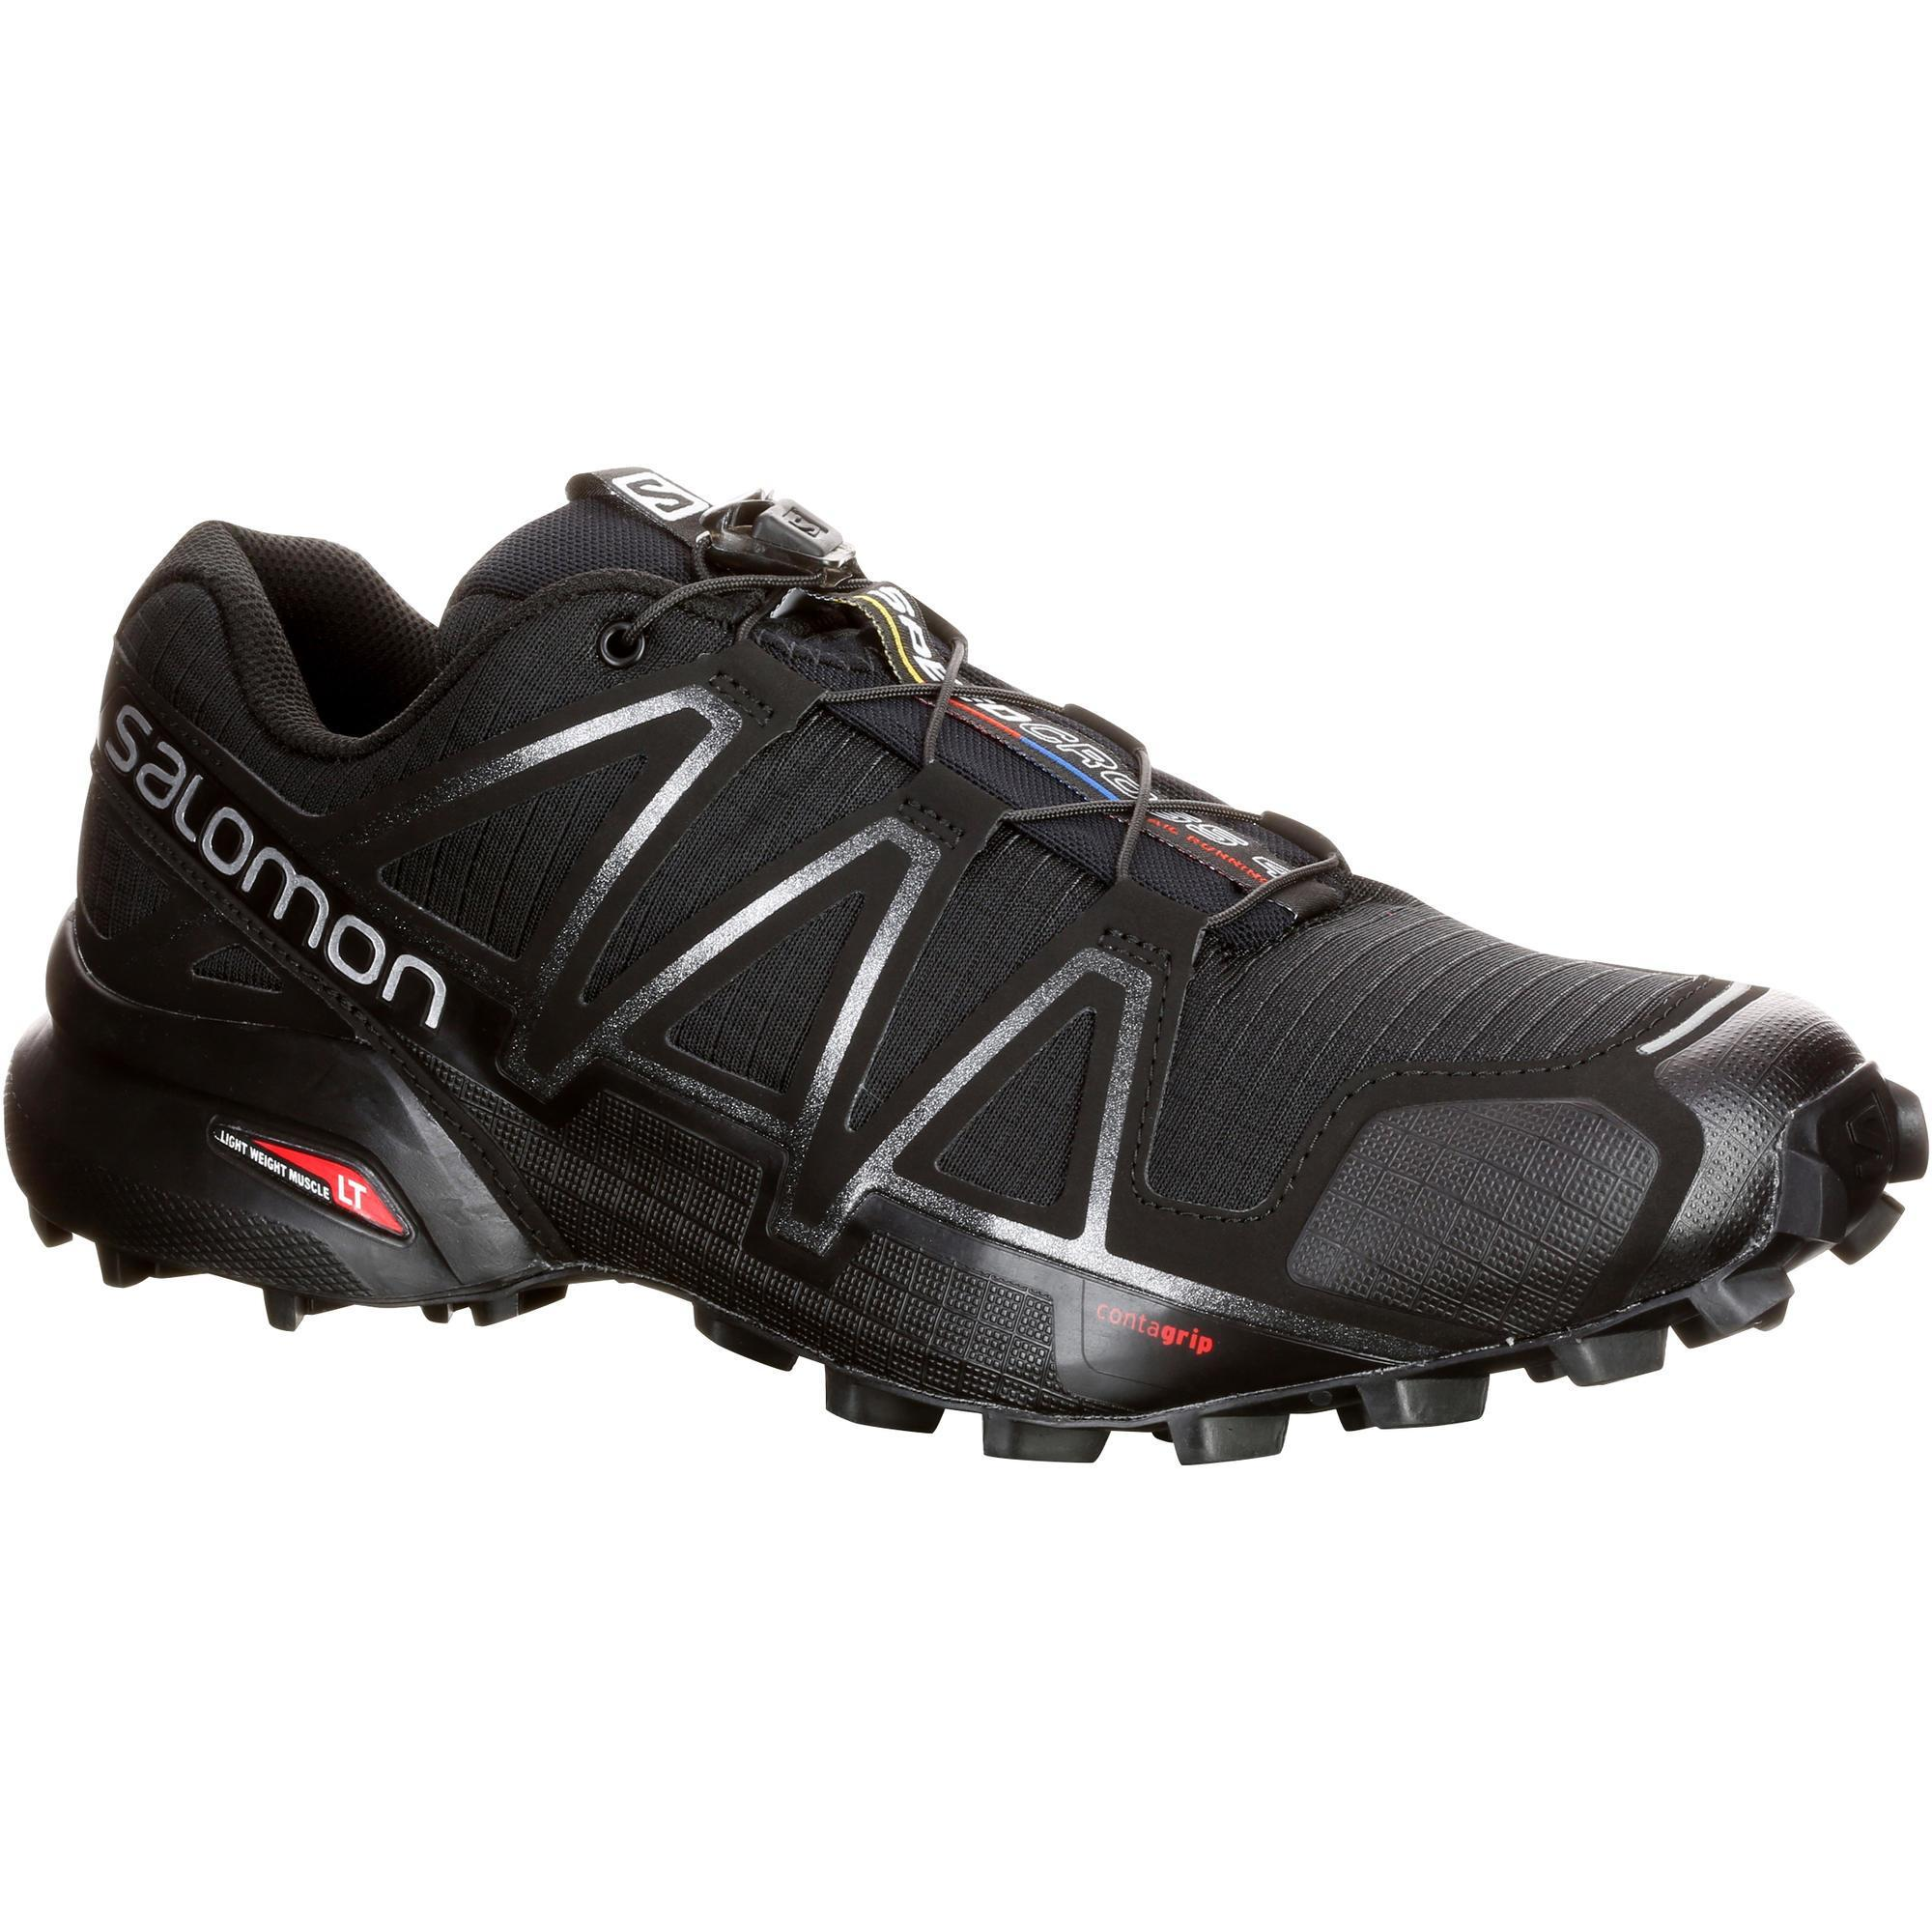 purchase cheap 8d6df 83df1 Salomon | Sport günstig kaufen | DECATHLON